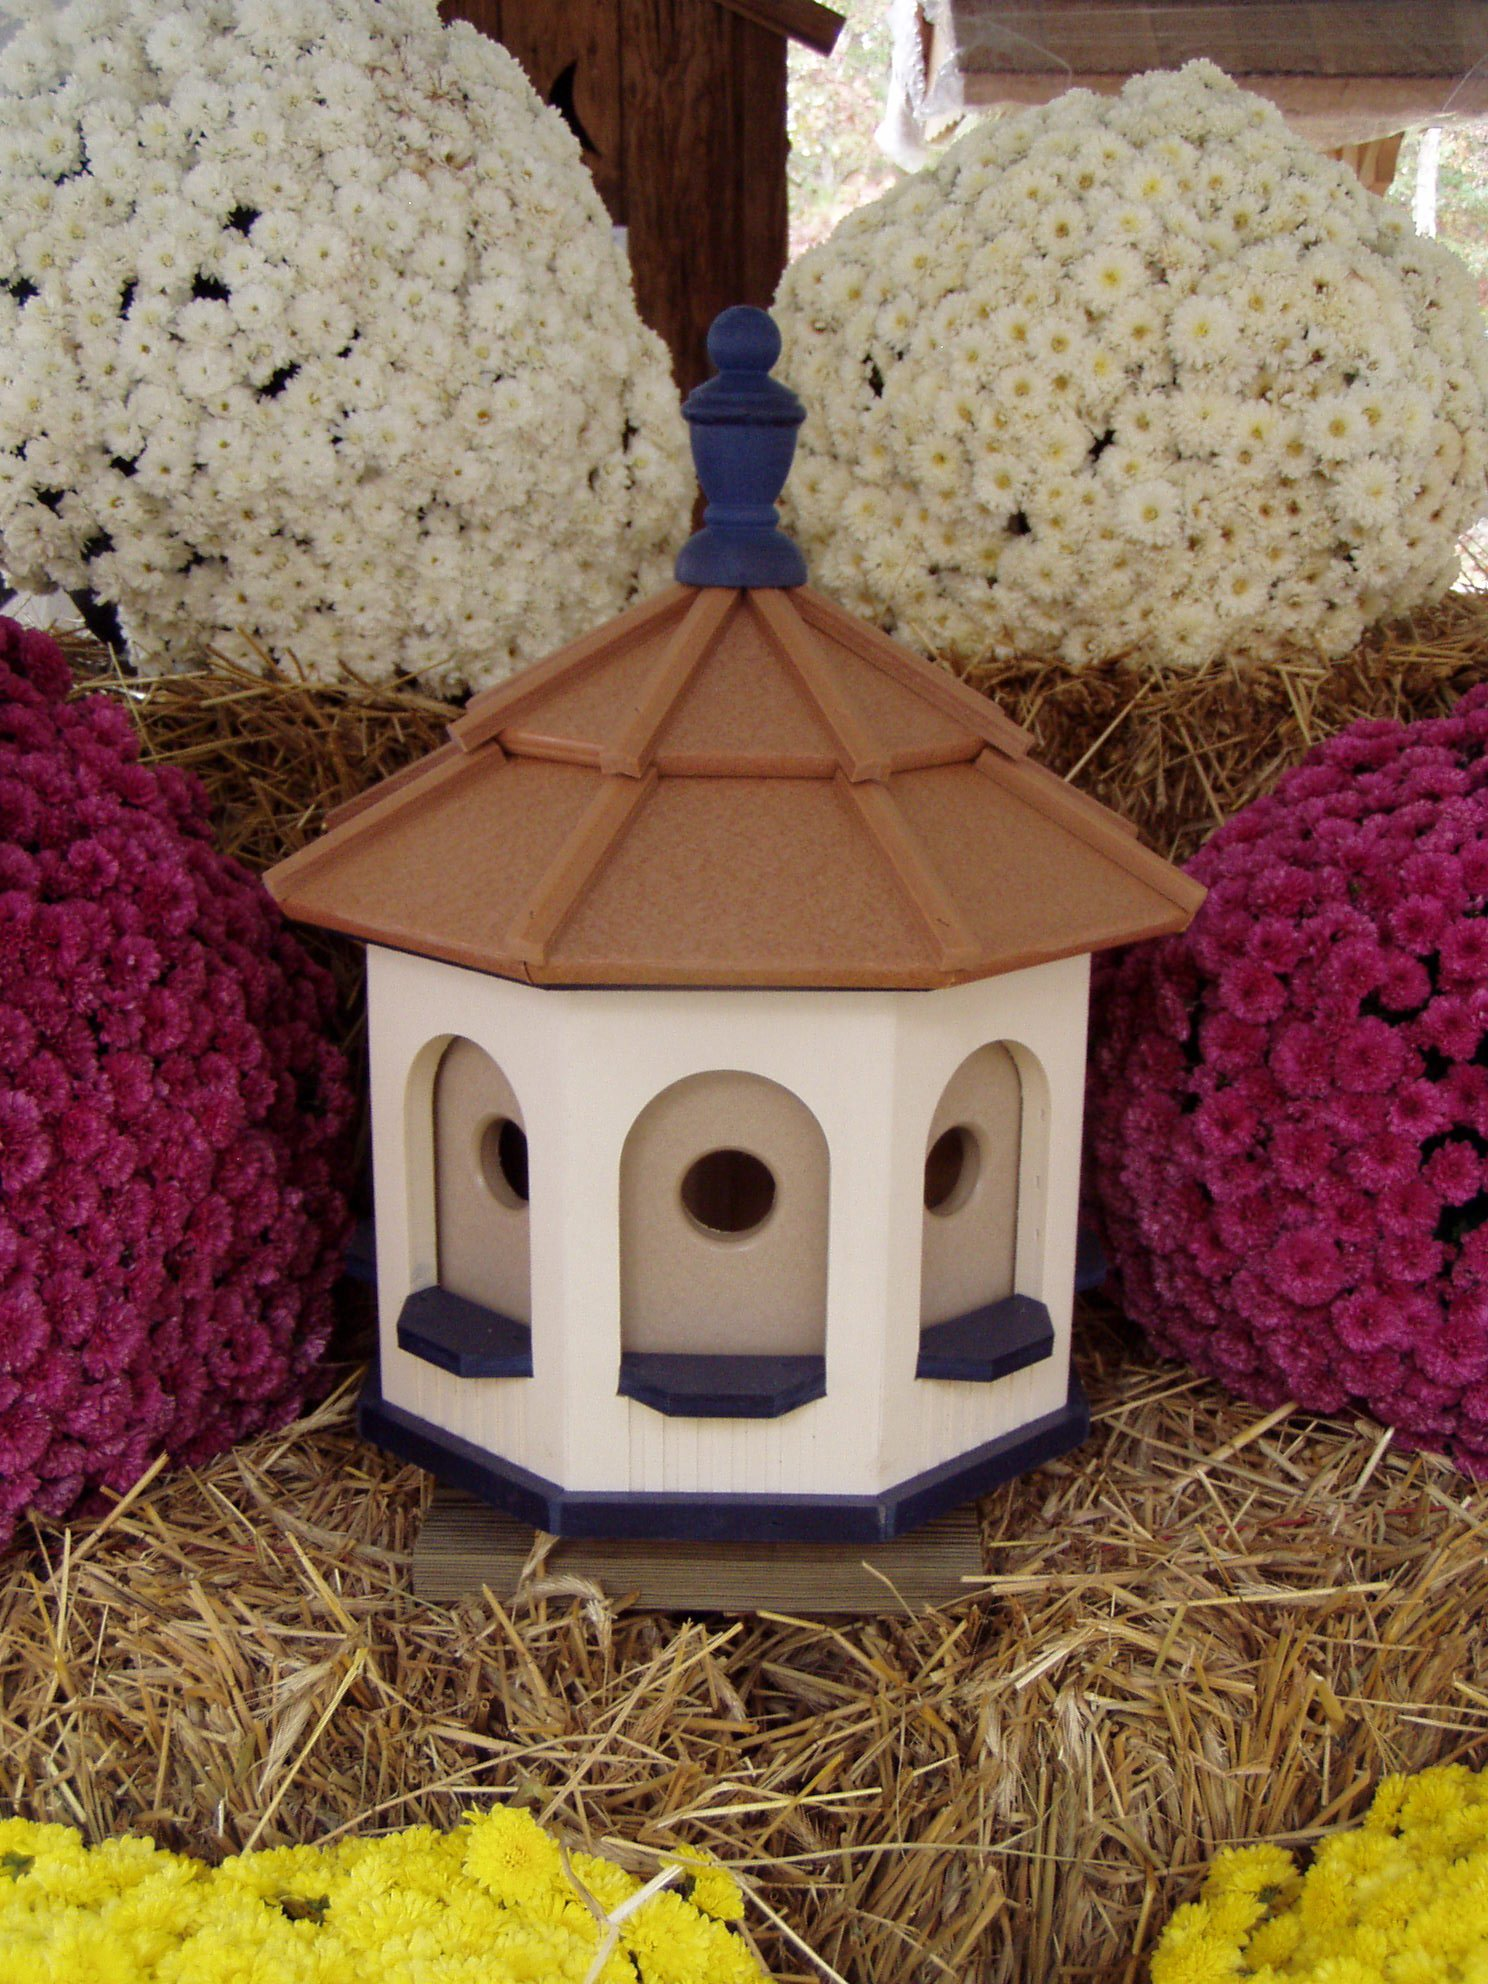 Handcrafted Poly Gazebo Birdhouse Homemade Handmade Ivory & Blue